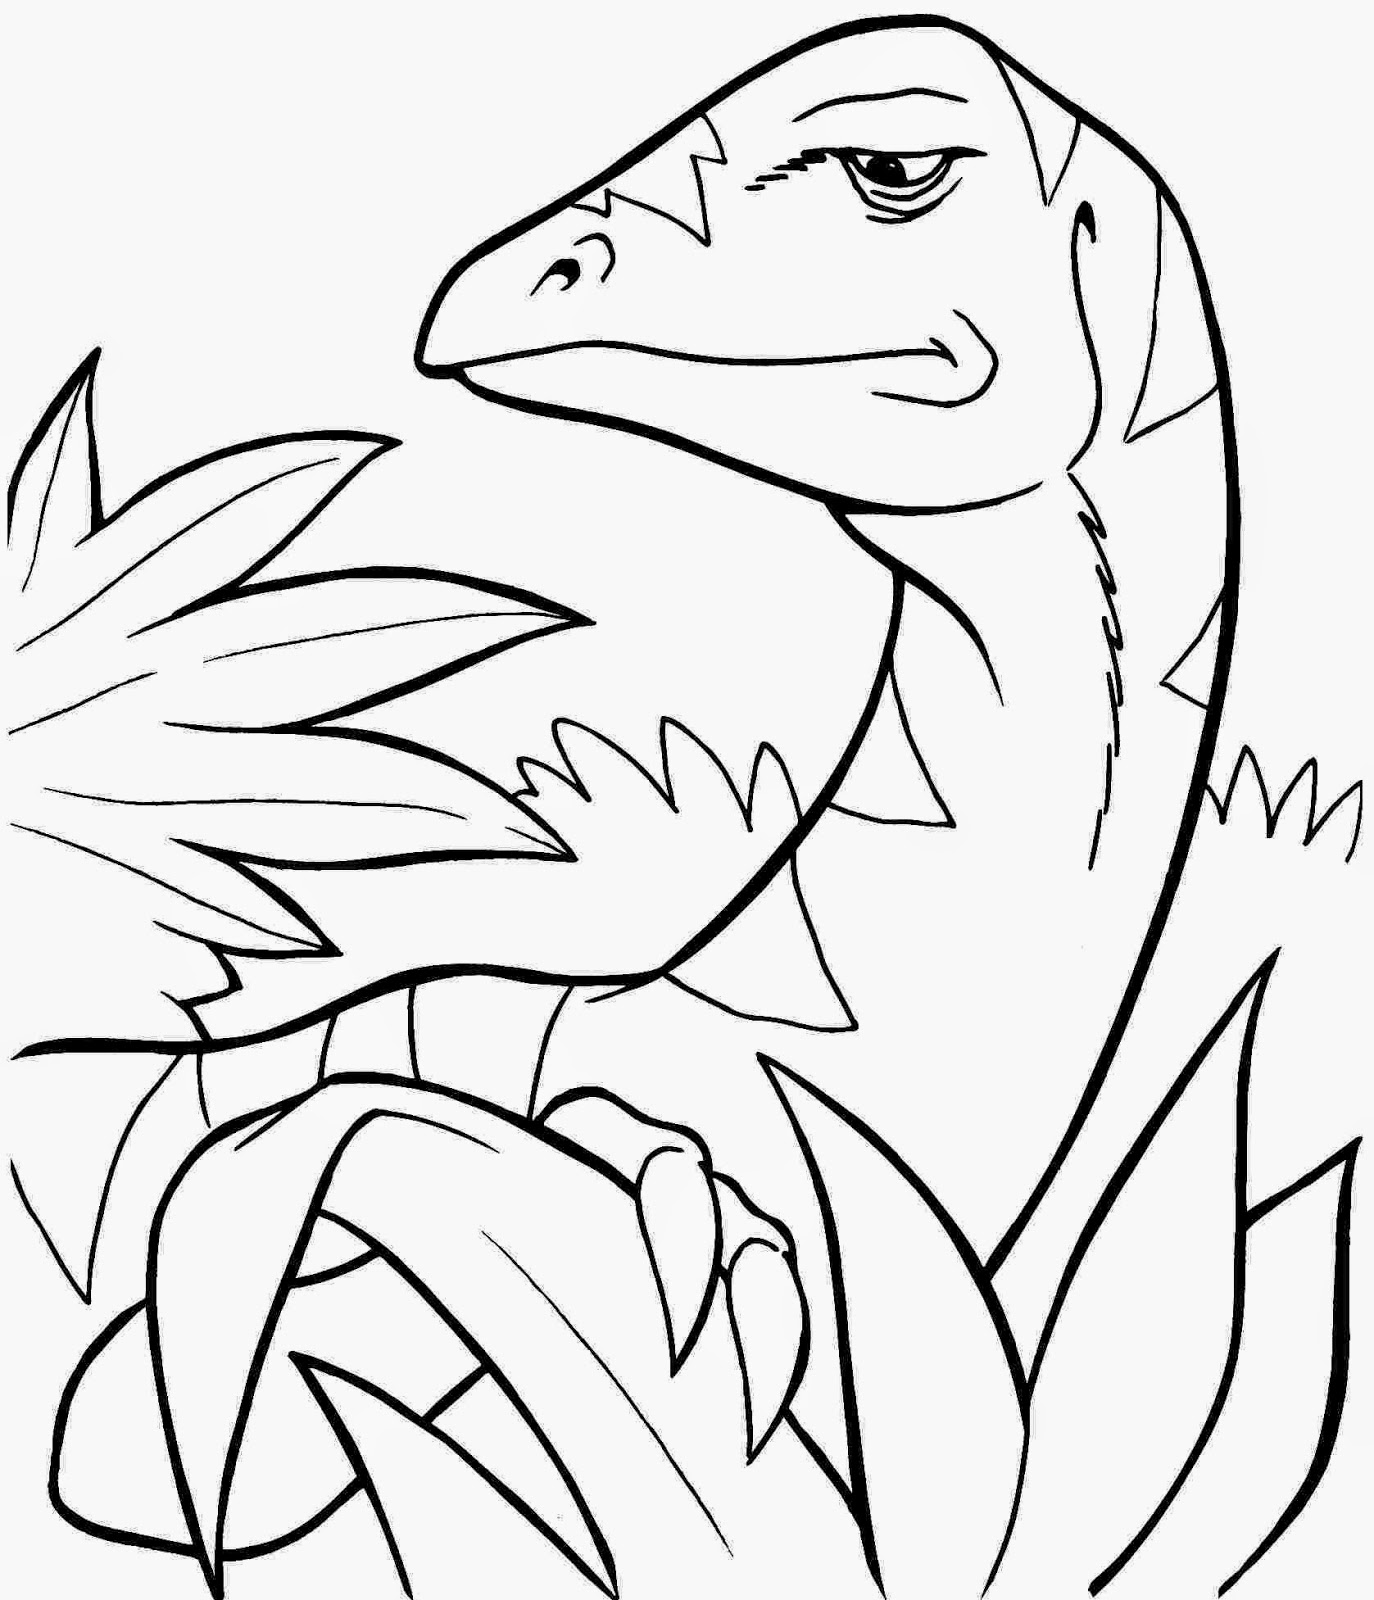 dinosaurs coloring page baby dinosaur coloring pages for preschoolers activity page coloring dinosaurs